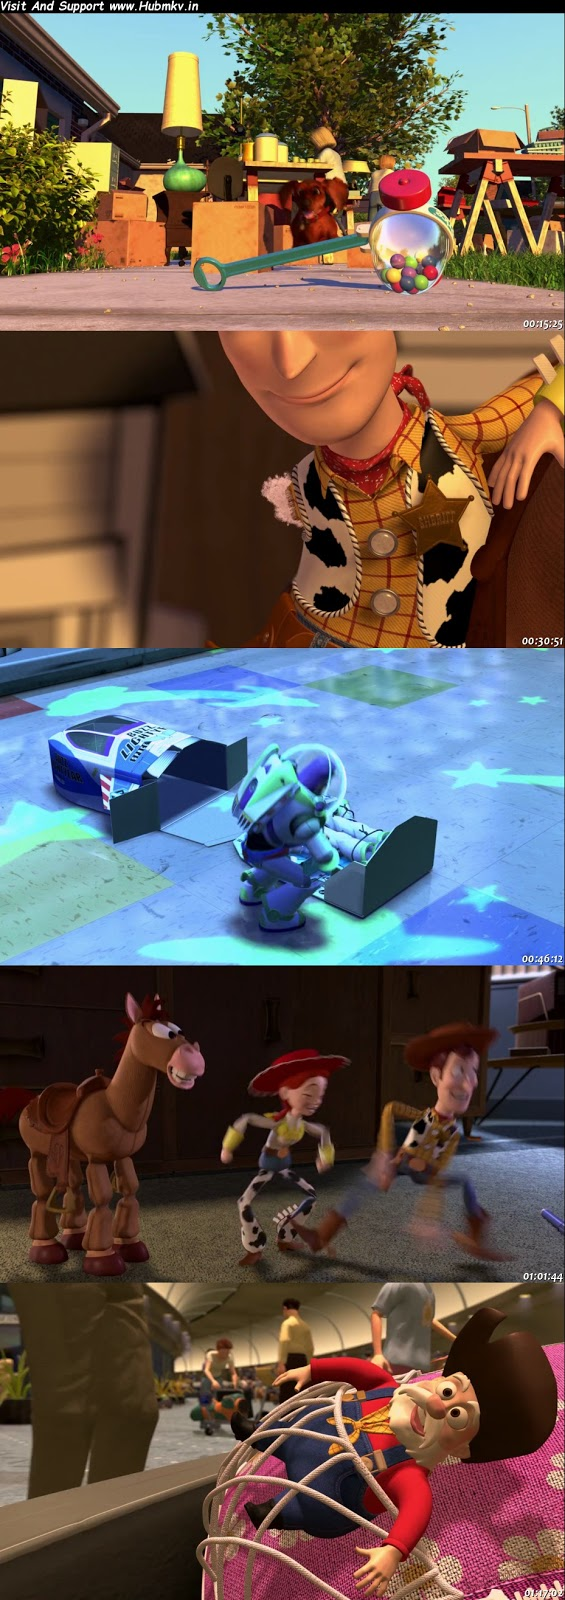 Toy Story 1 (1995) 480p Dual Audio In [Hindi English]